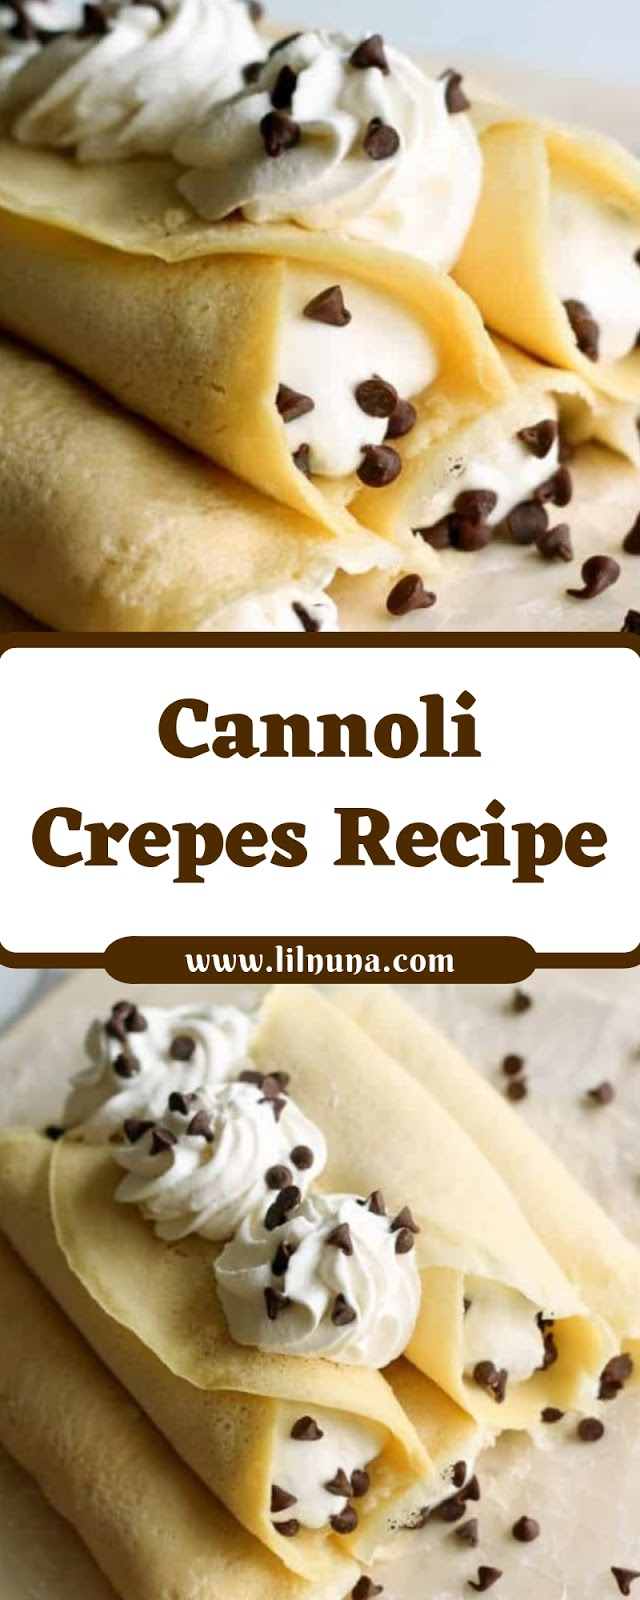 Cannoli Crepes Recipe